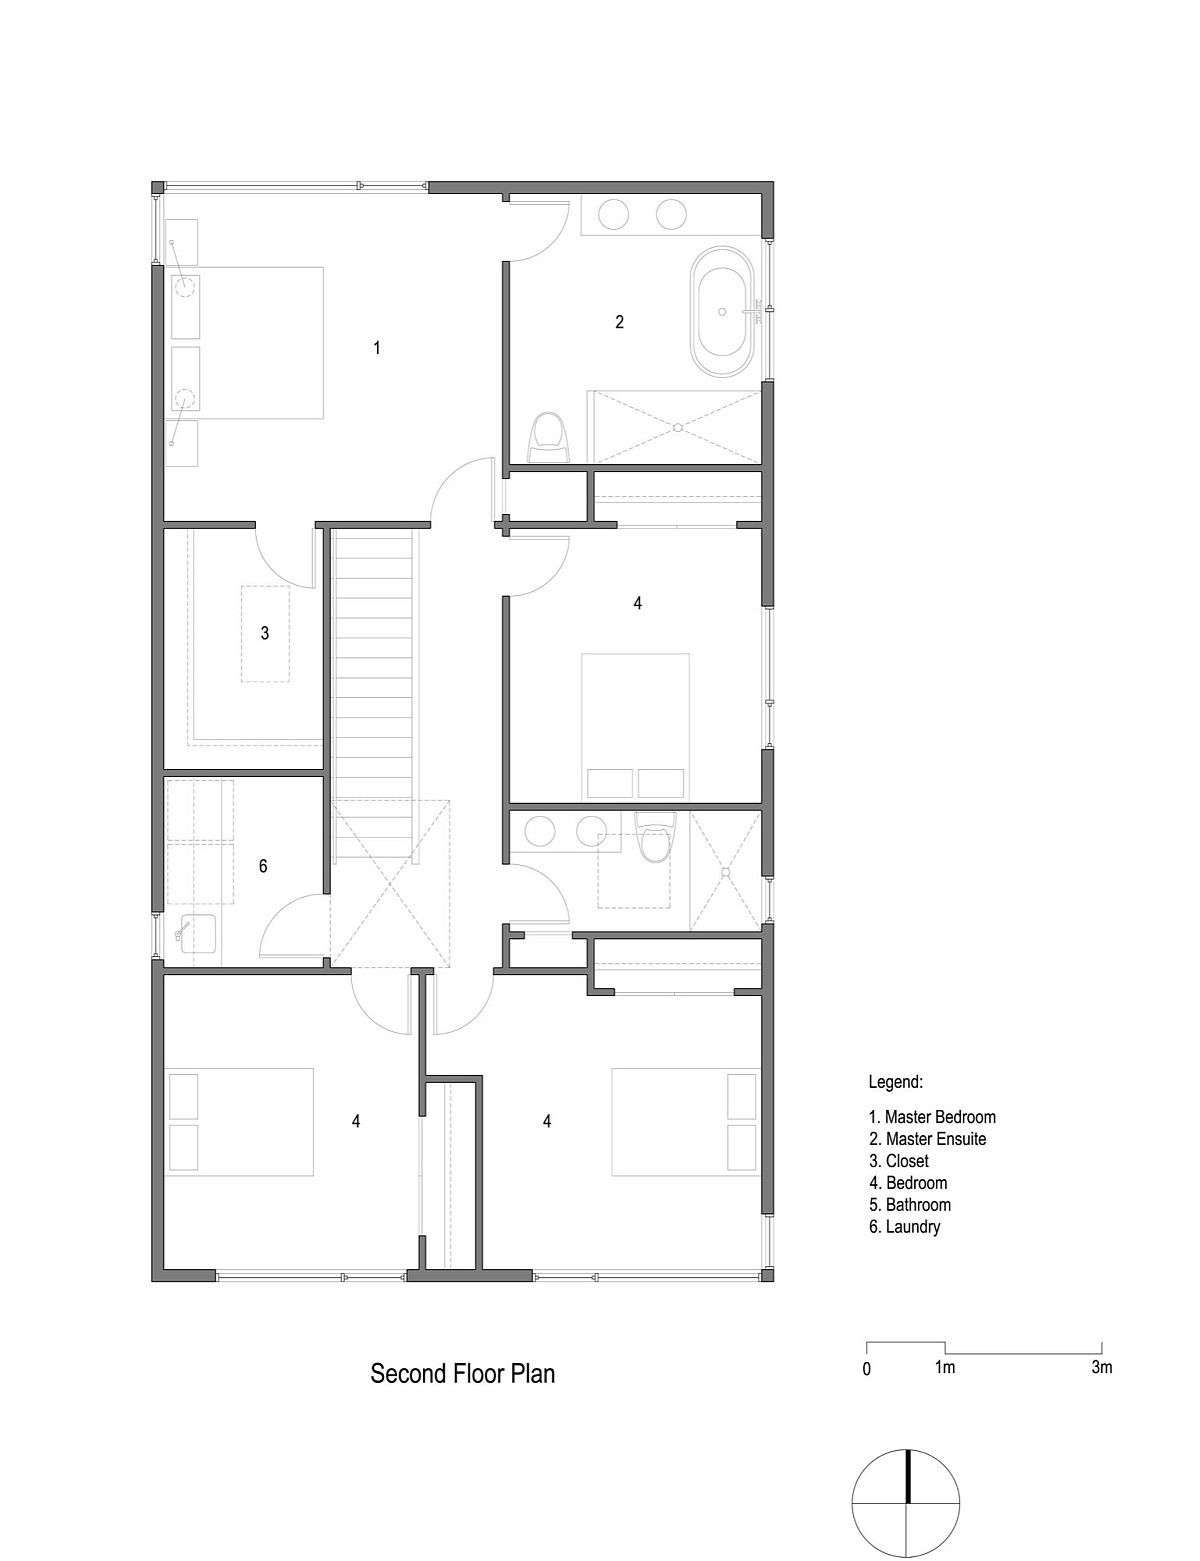 Second level floor plan of the Vancouver home with master suite, laundry and additional bedrooms